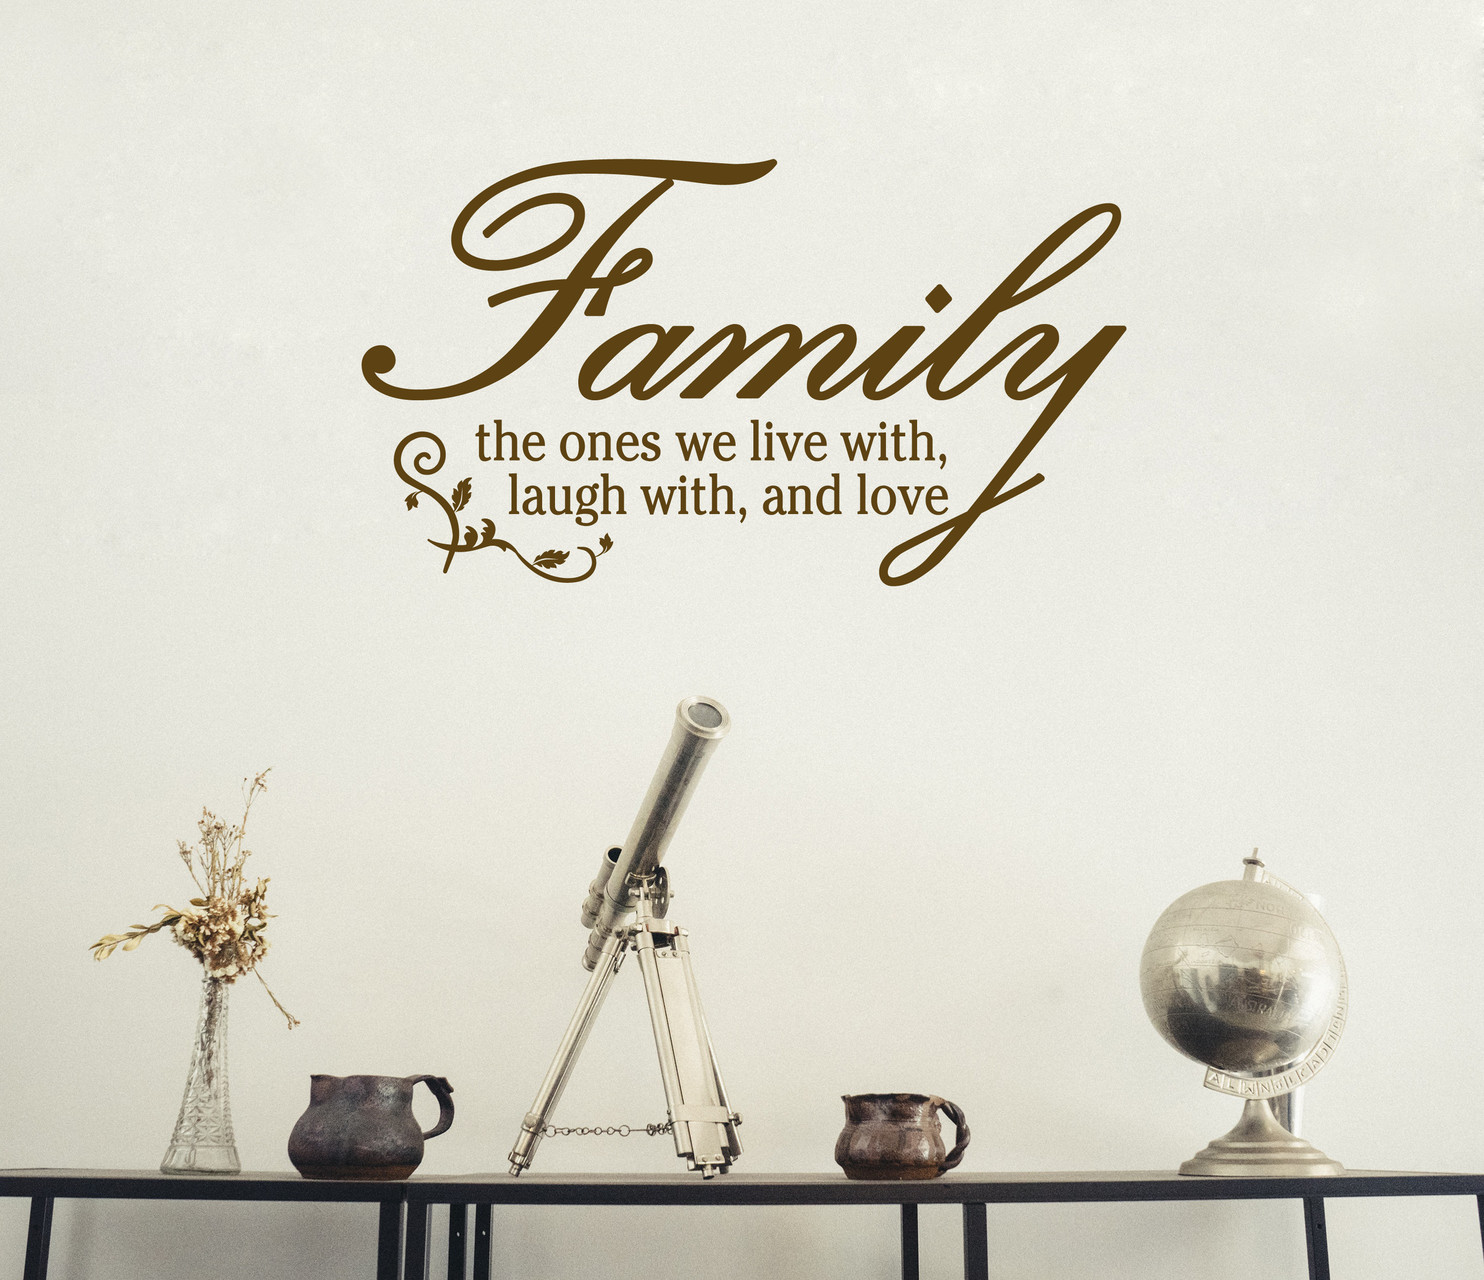 Family The ones we live with, laugh with, and love